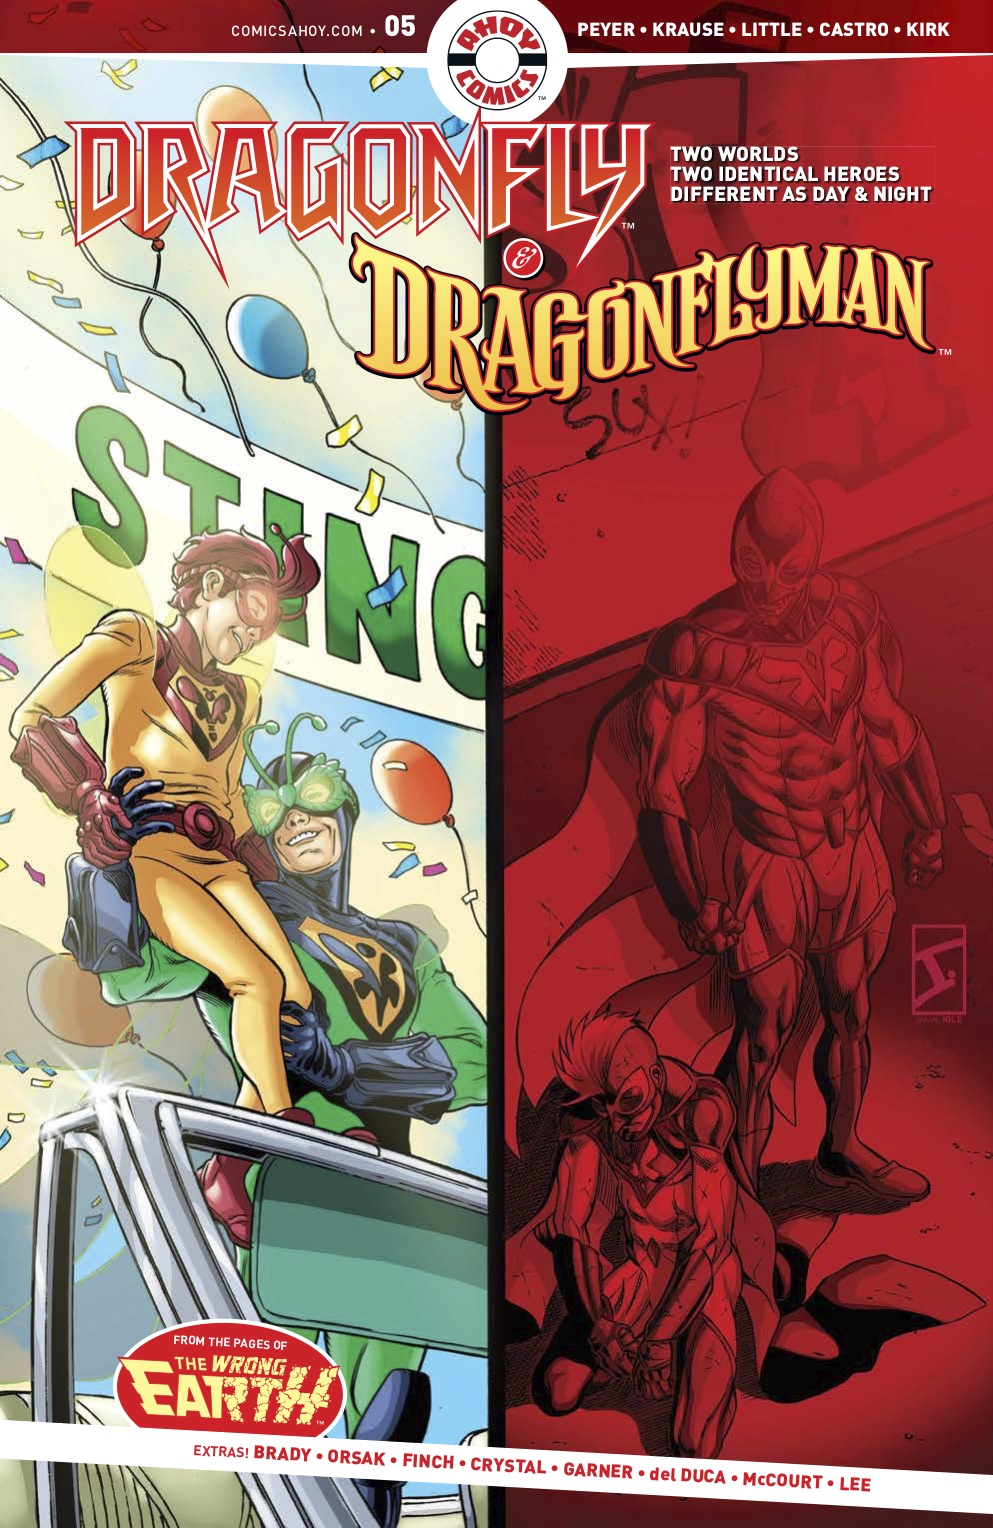 DRAGONFLY AND DRAGONFLYMAN #5 exclusive preview ahoy comics comic books